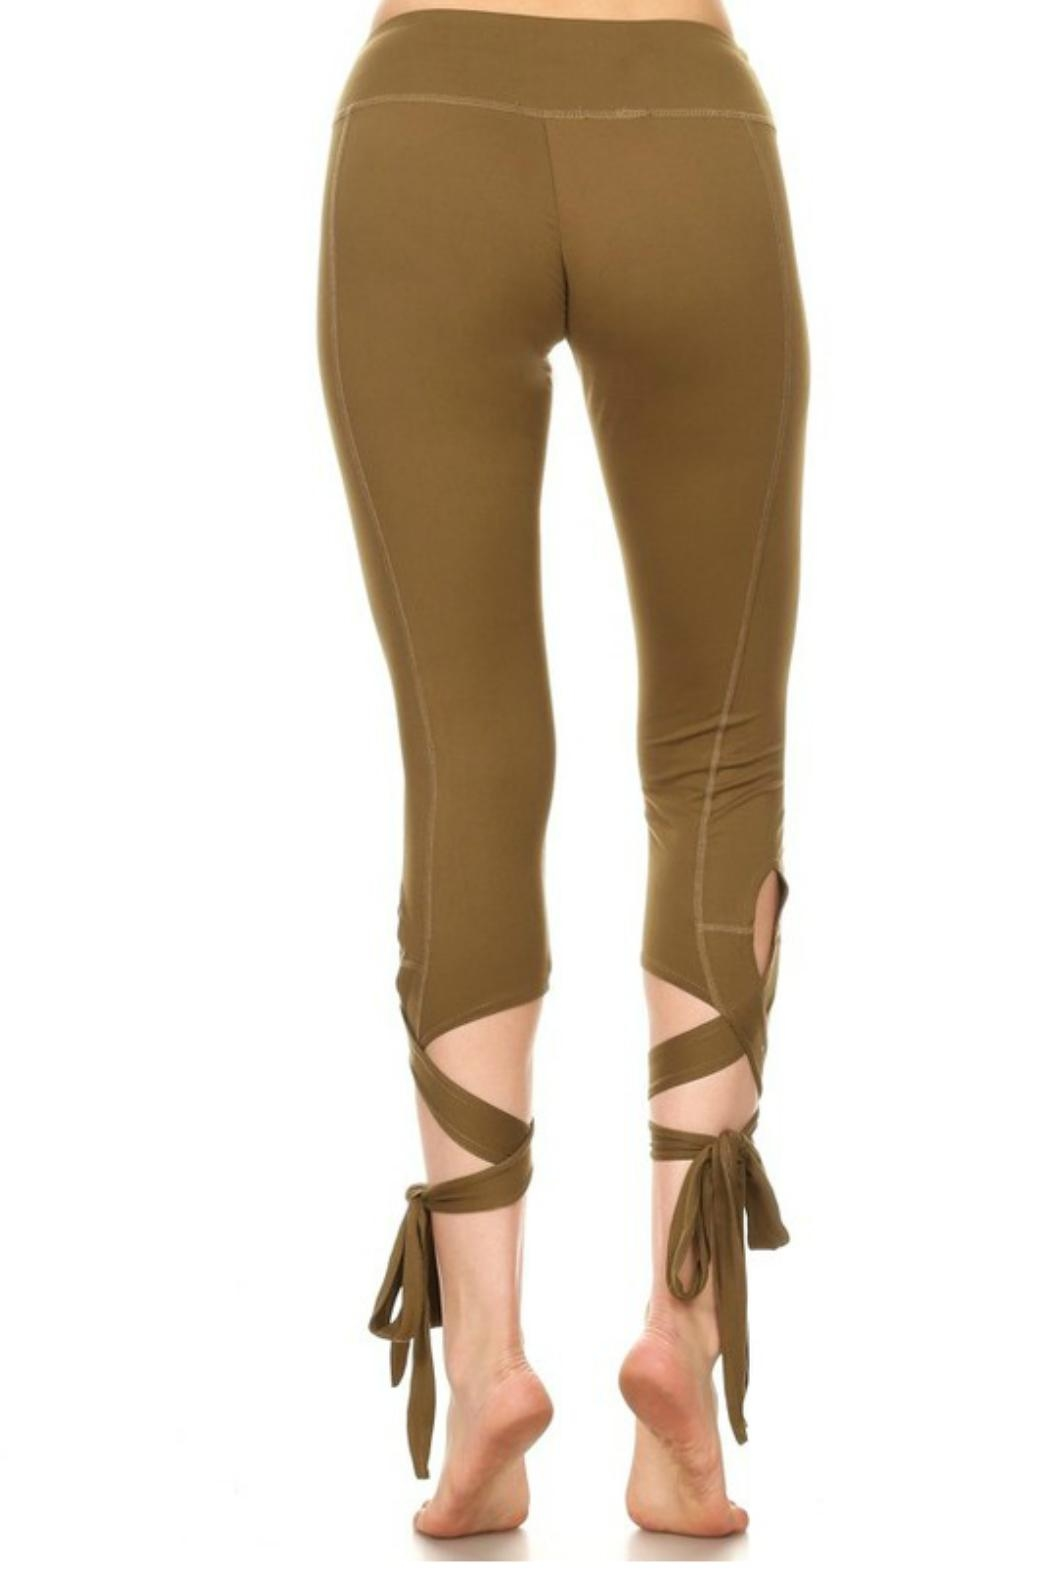 Minx Ballerina Leggings - Side Cropped Image